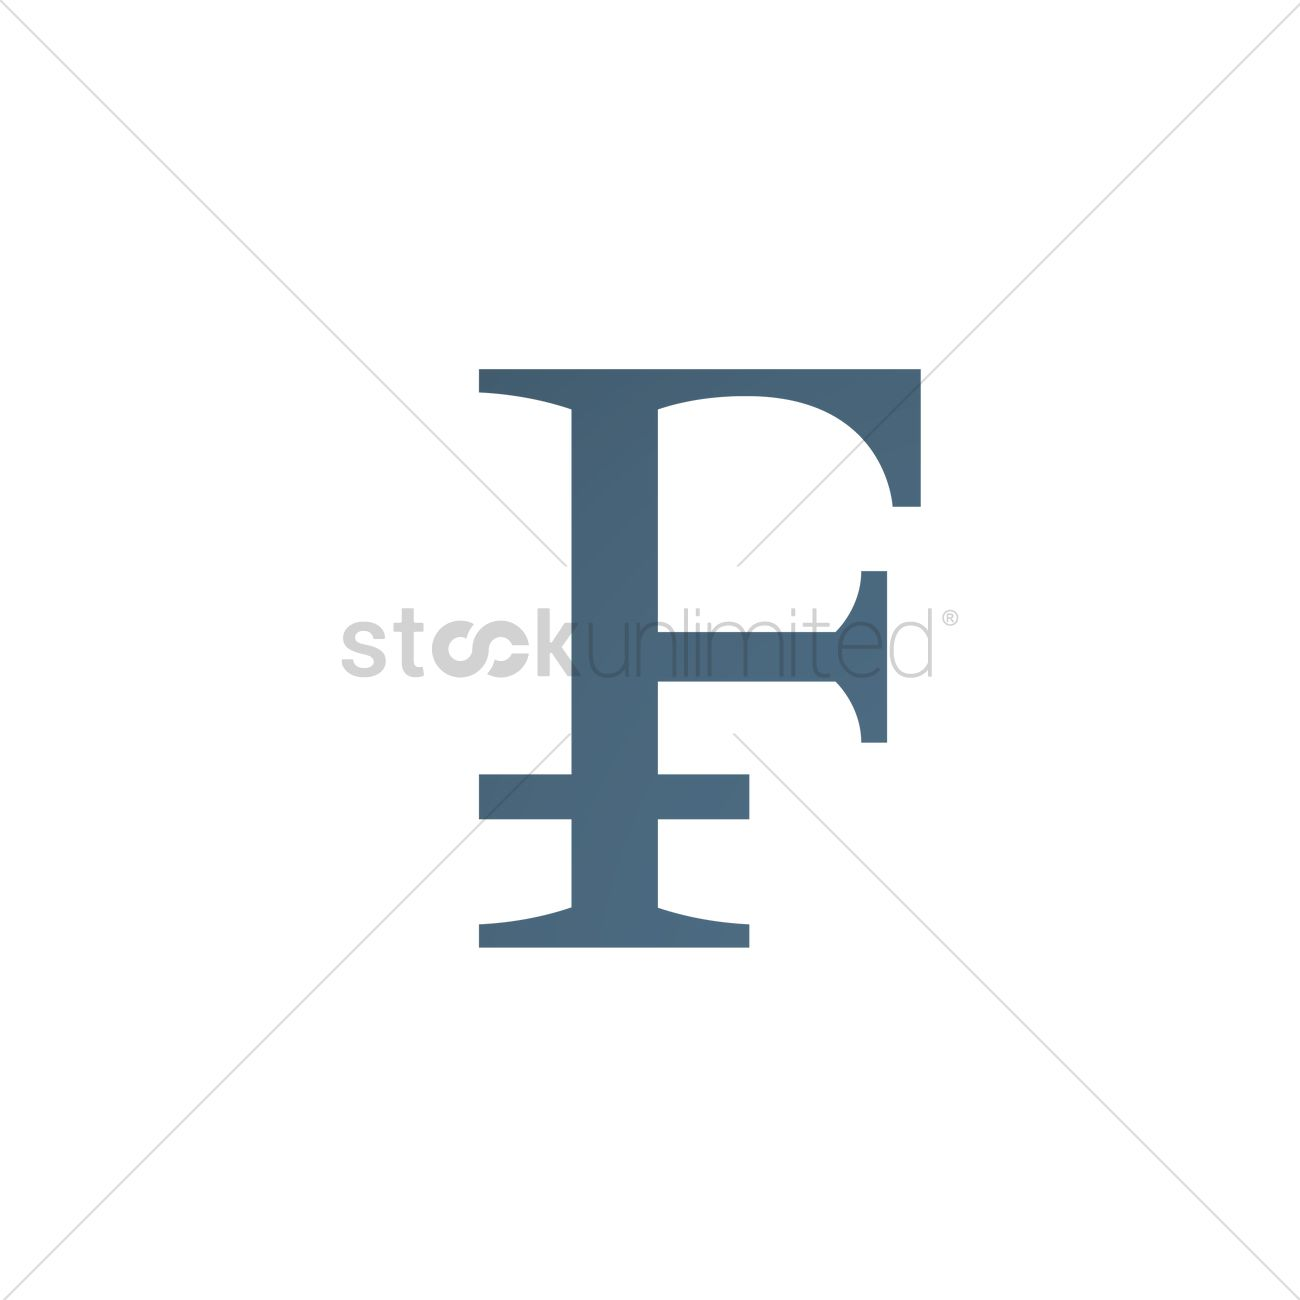 Swiss franc currency symbol vector image 2034589 stockunlimited swiss franc currency symbol vector graphic biocorpaavc Images